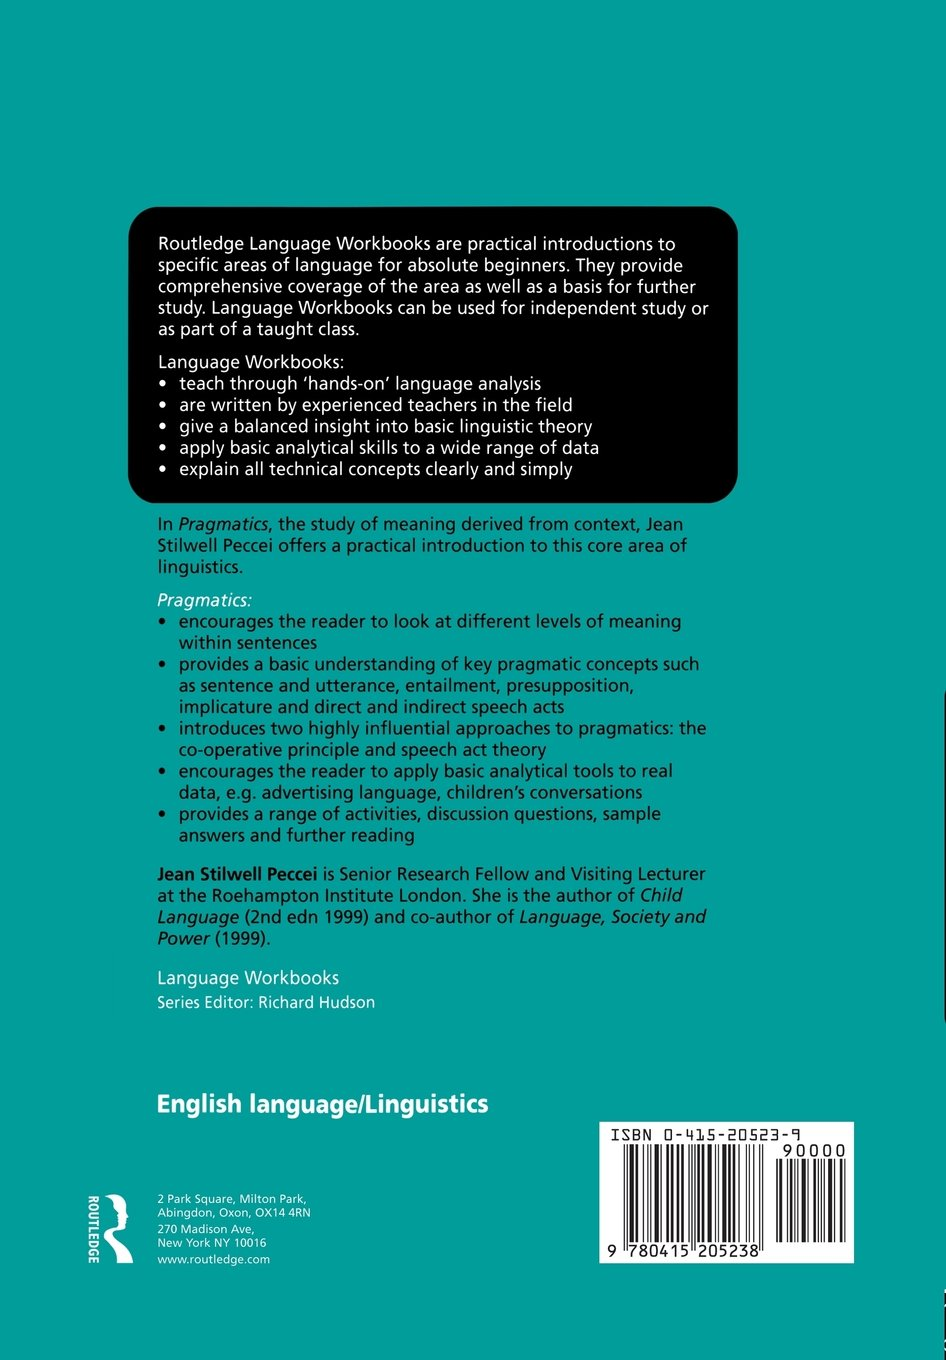 pragmatics language workbooks amazon de jean stilwell peccei pragmatics language workbooks amazon de jean stilwell peccei fremdsprachige bücher